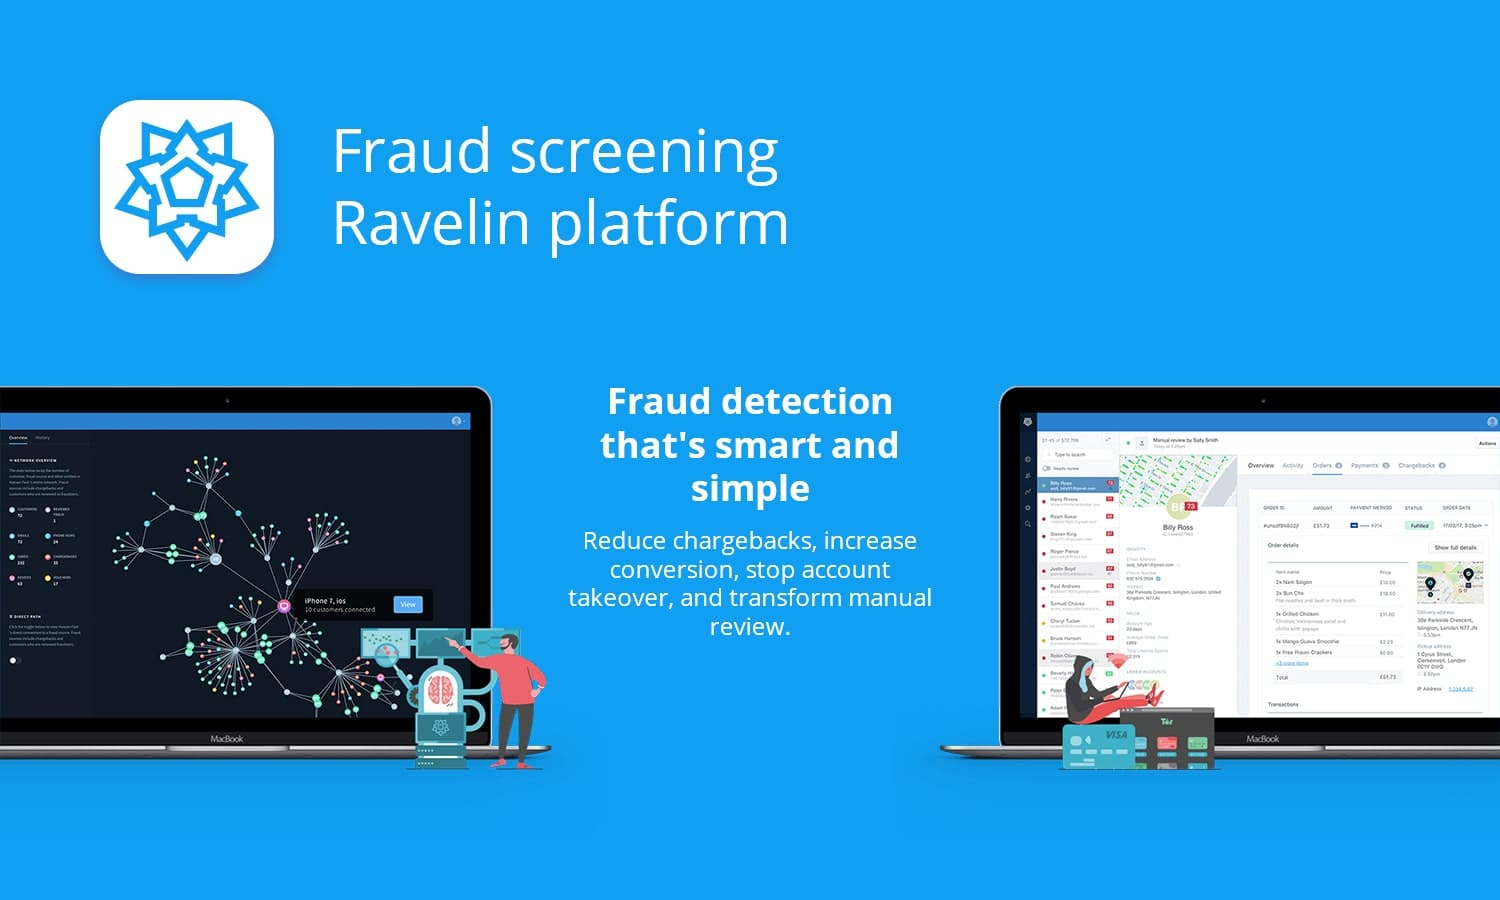 screening Ravelin platform